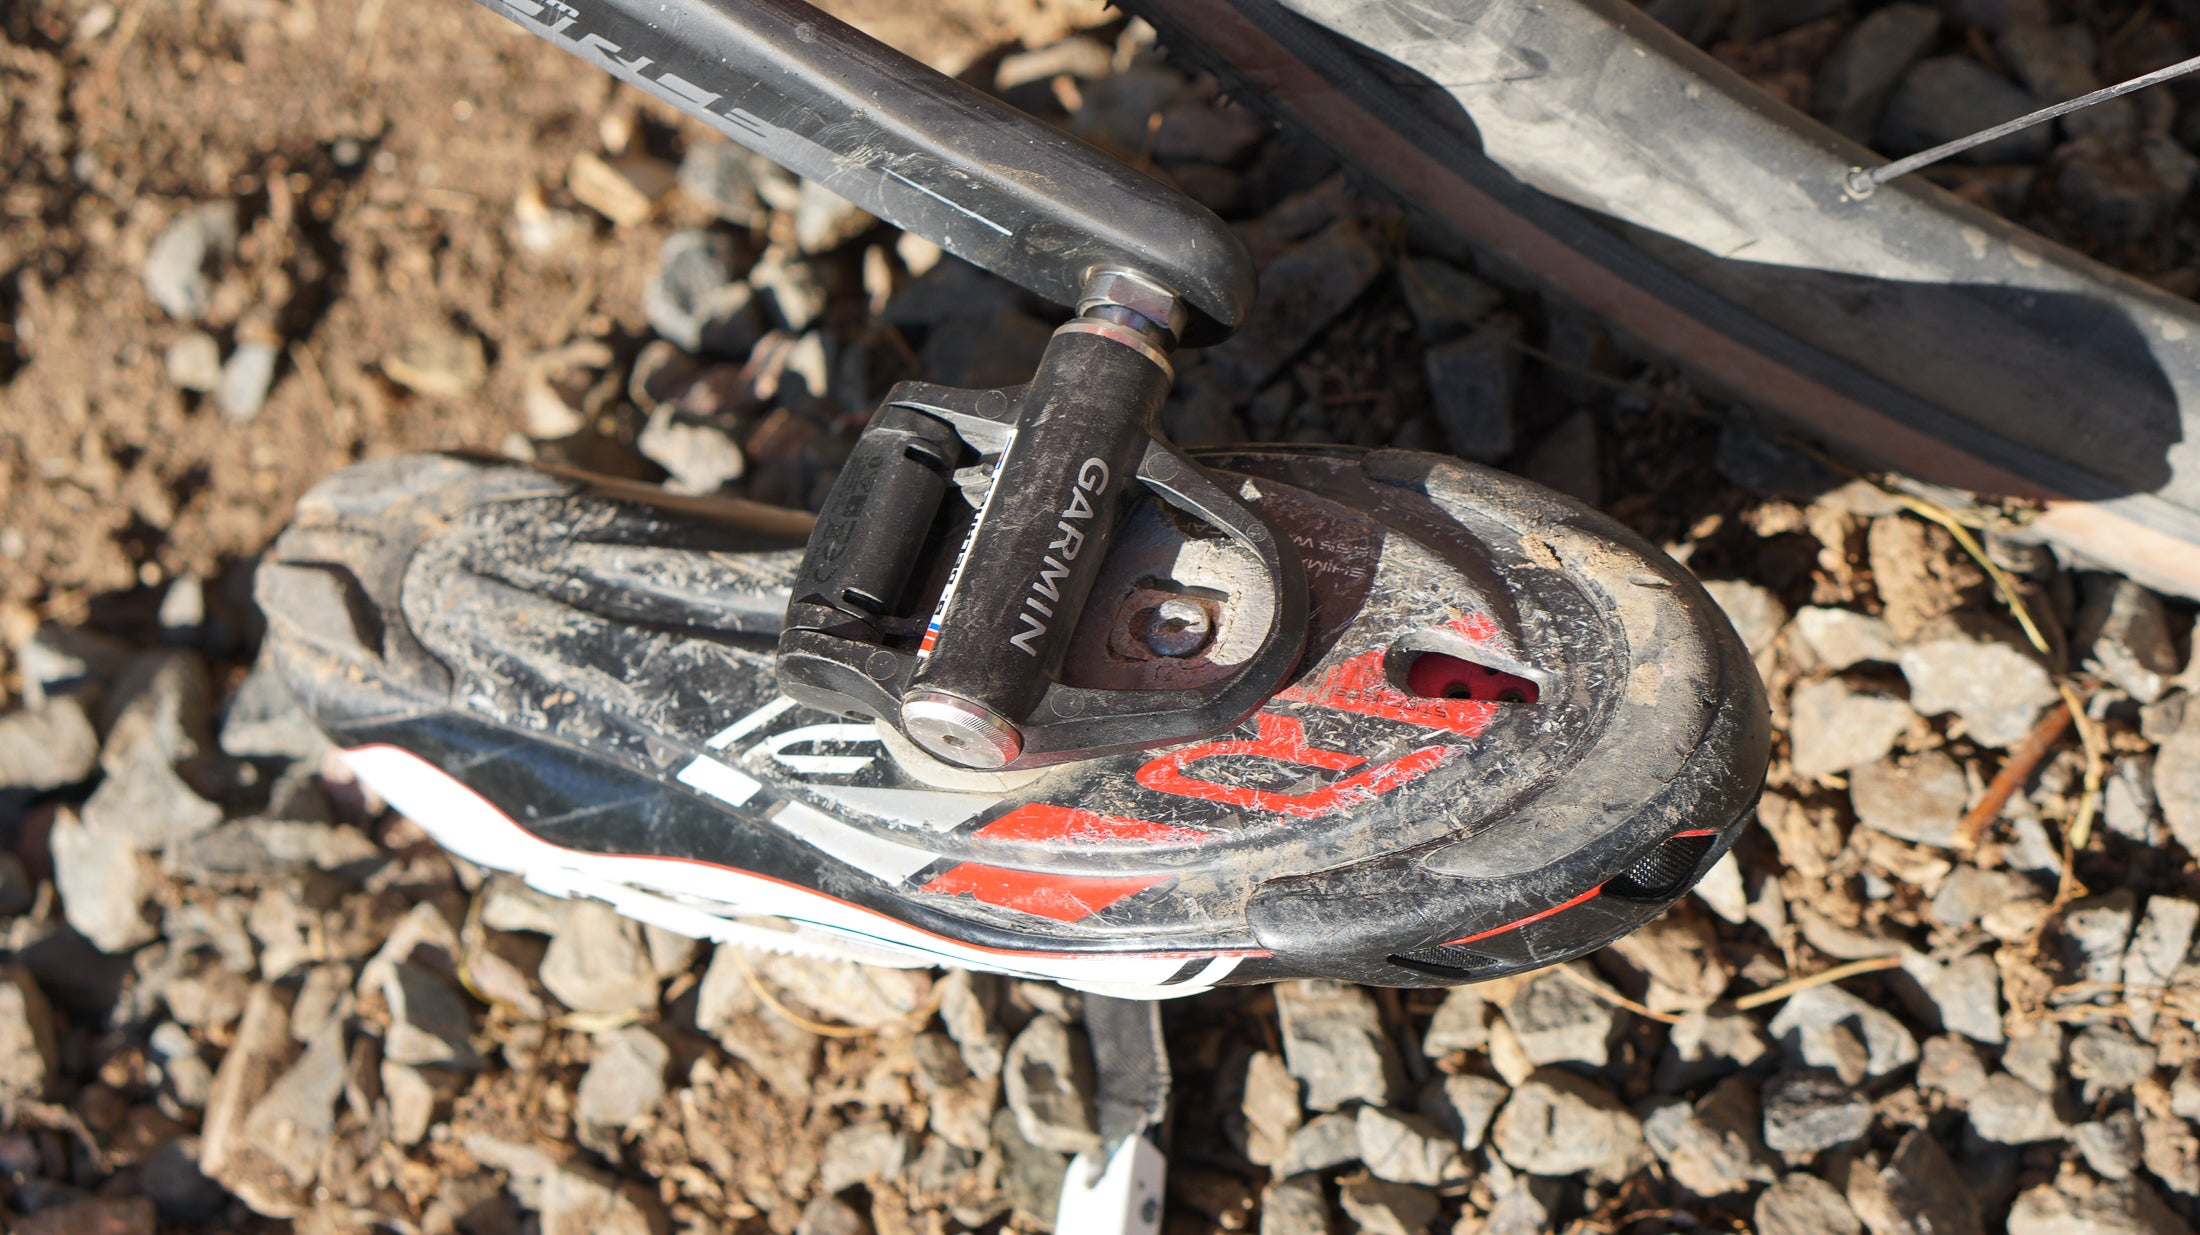 NEW !! PEDALS FOR ROAD// GRAVEL HIGH PERFORMANCE+ EASY WALKING ! LIGHT